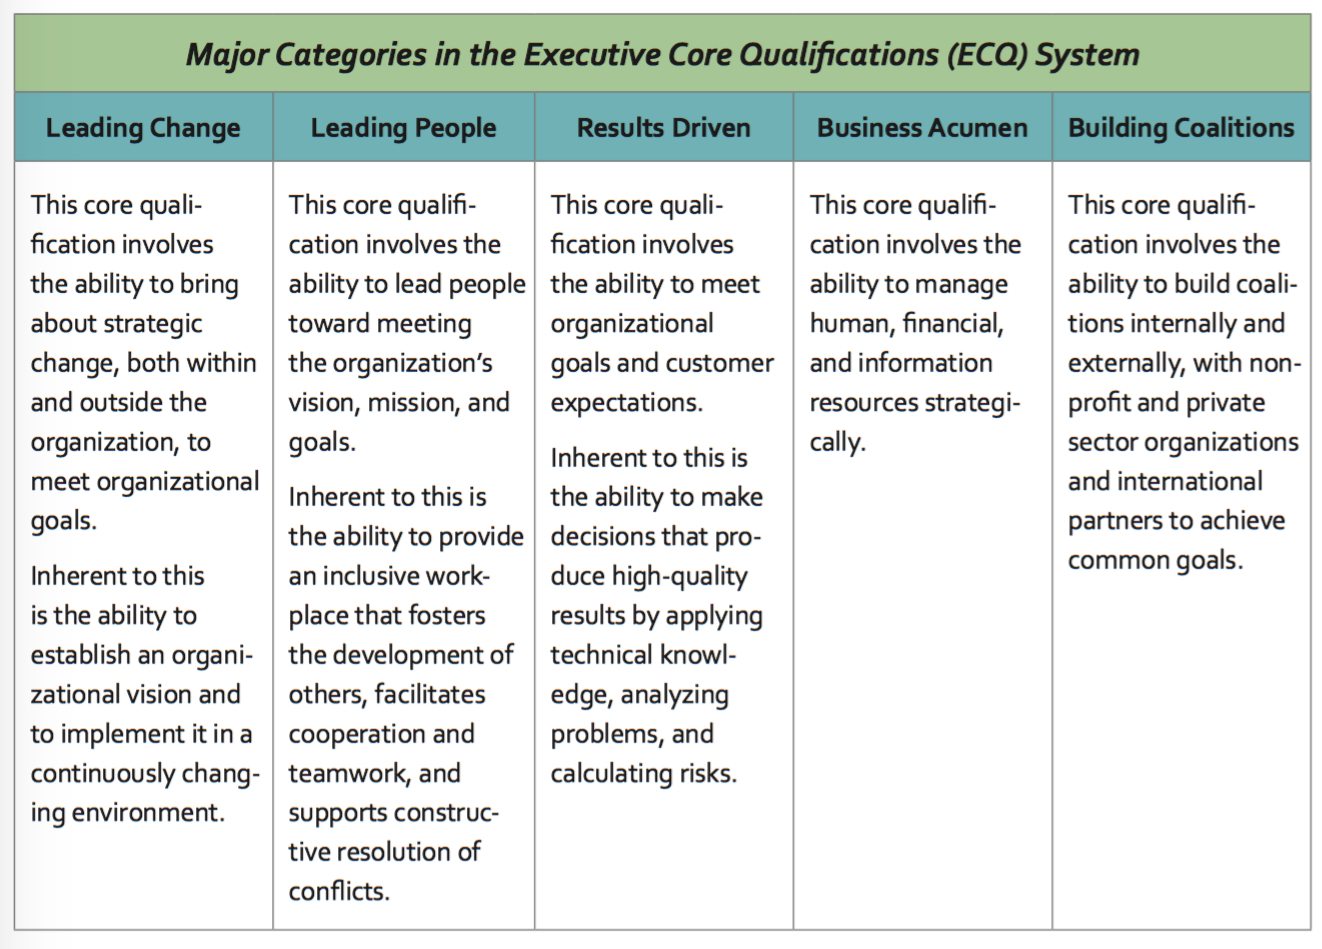 Major categories in the Executive Core Qualifications (ECQ) System